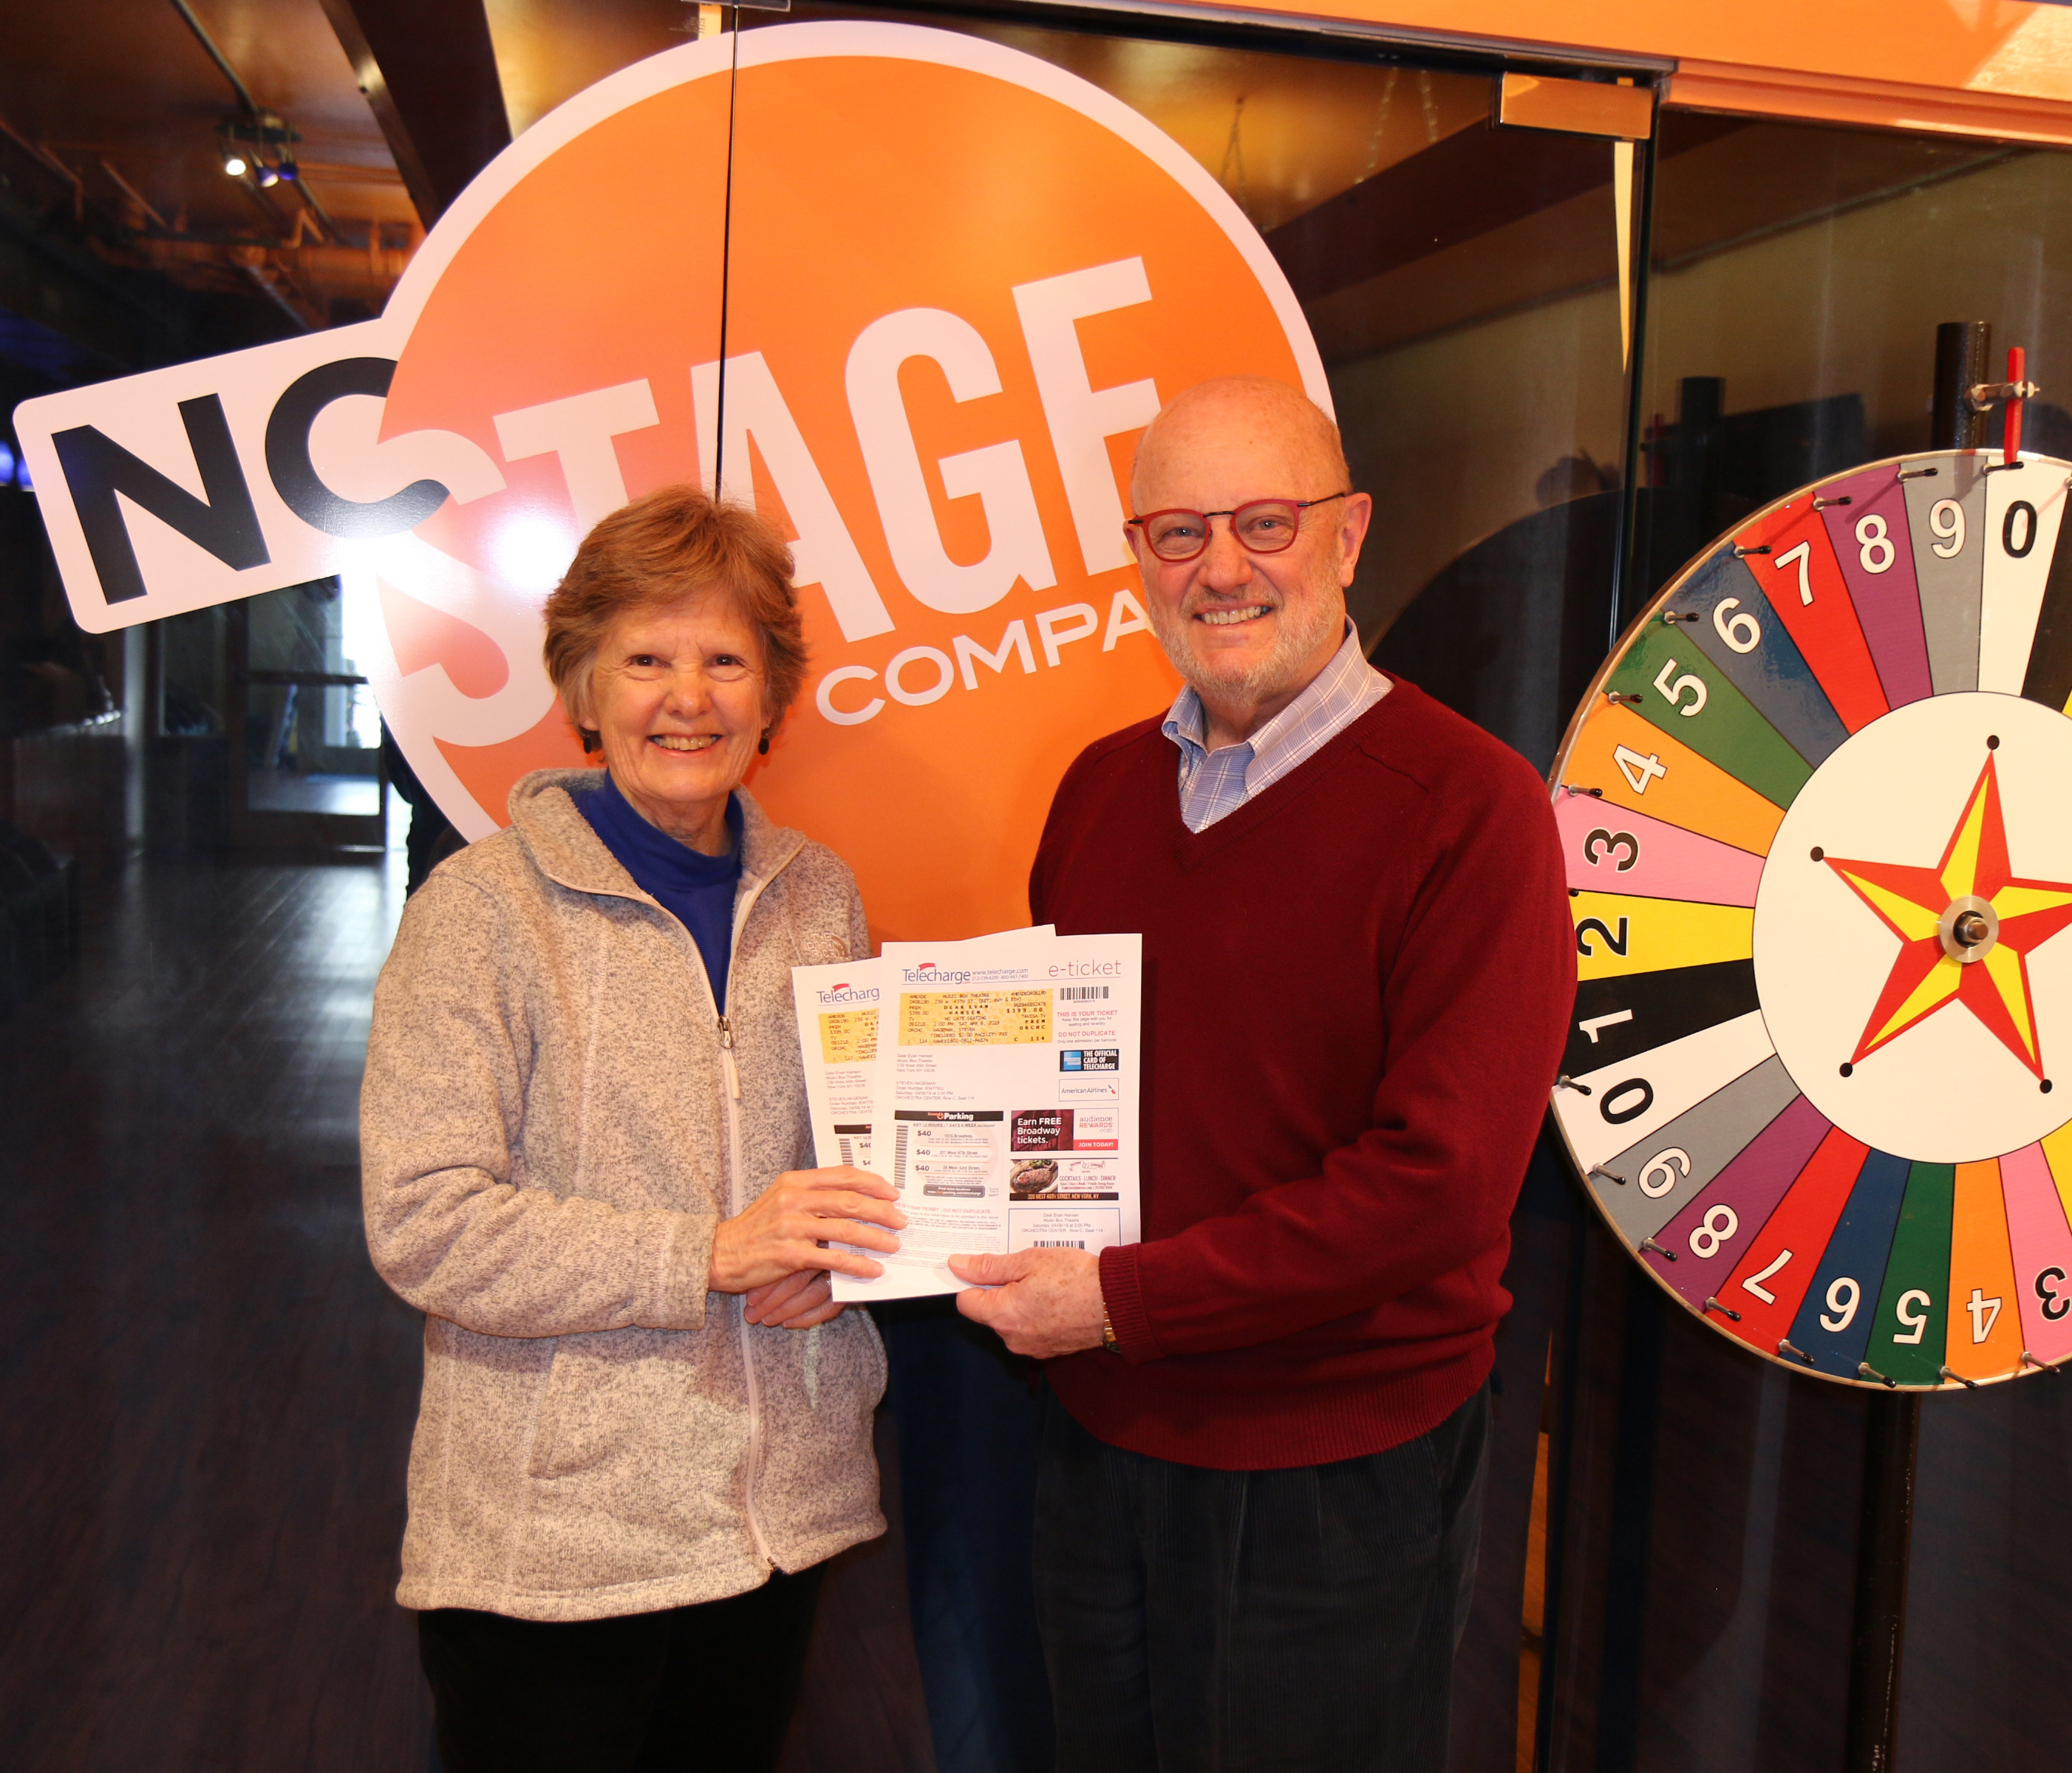 CONGRATULATIONS to our raffle winners: Scottie & Tom Cannon, in Black Mountain, NC!